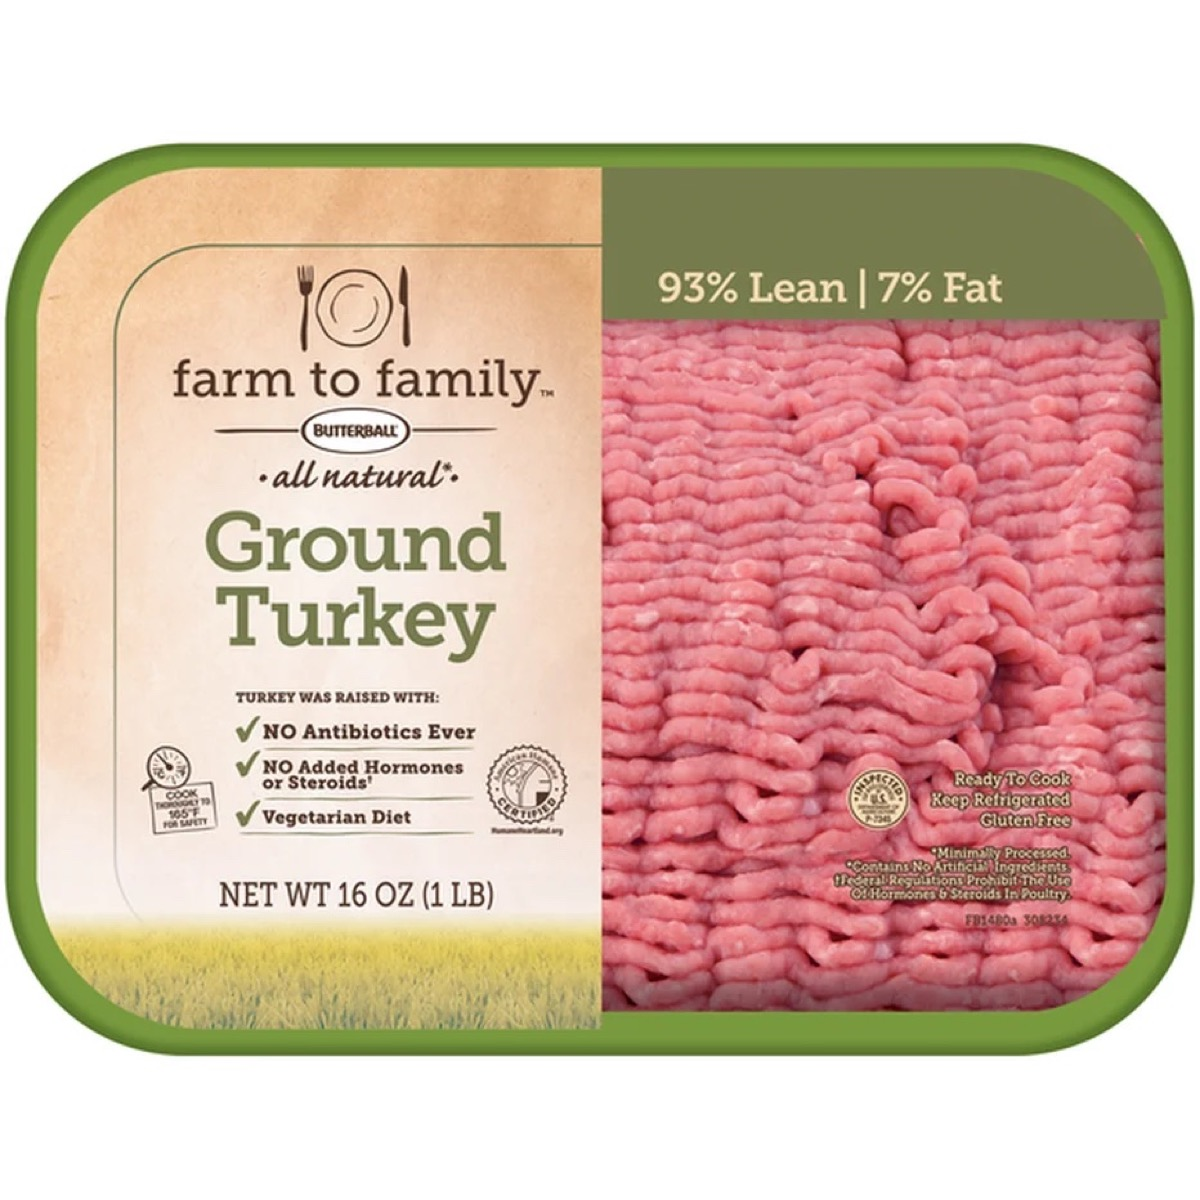 butterball ground turkey in green tray